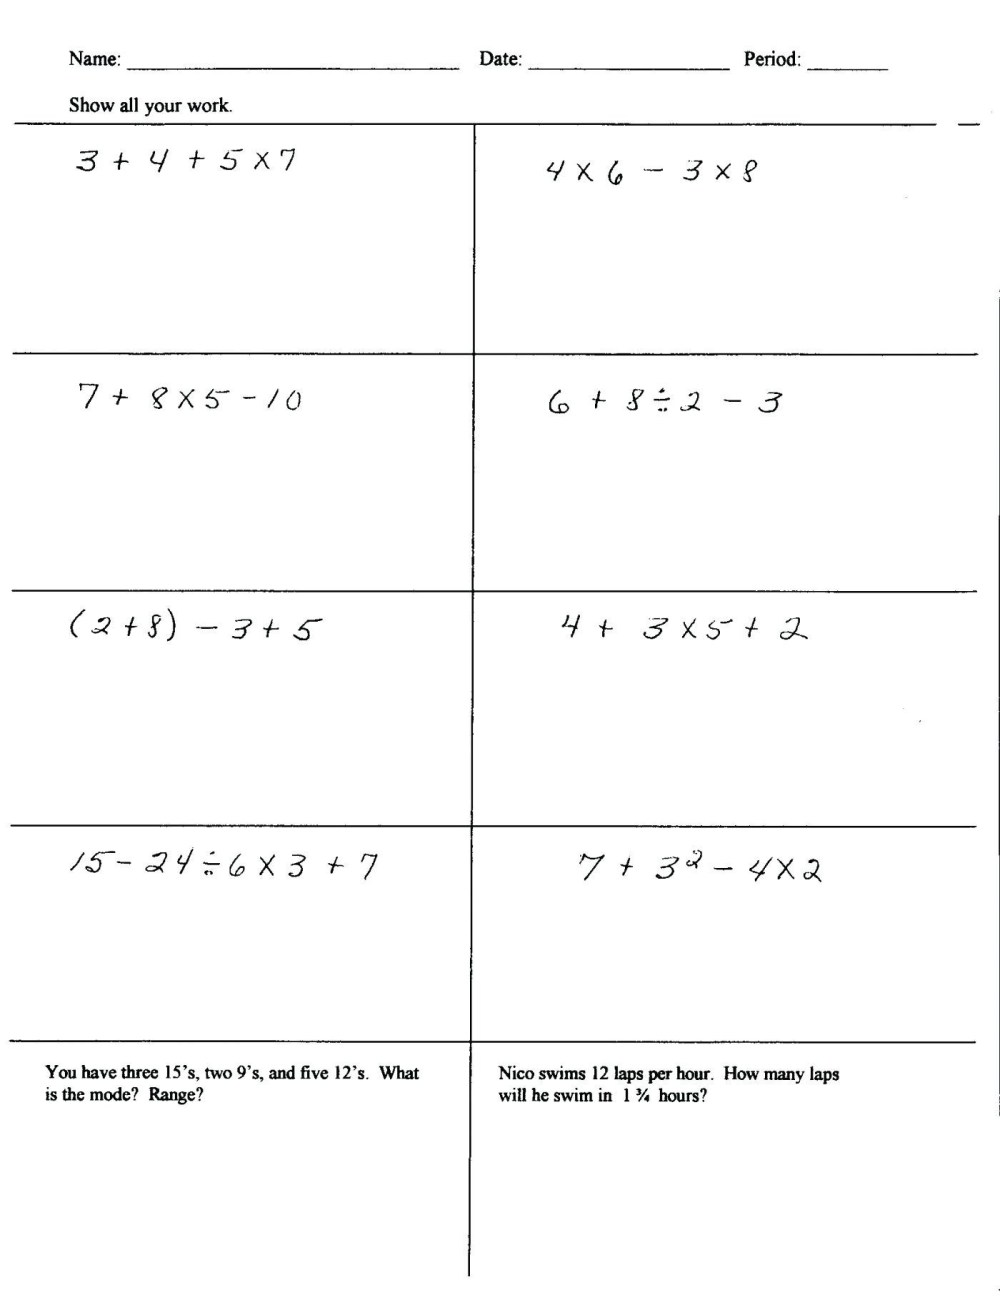 medium resolution of Bodmas Worksheets With Brackets   Printable Worksheets and Activities for  Teachers